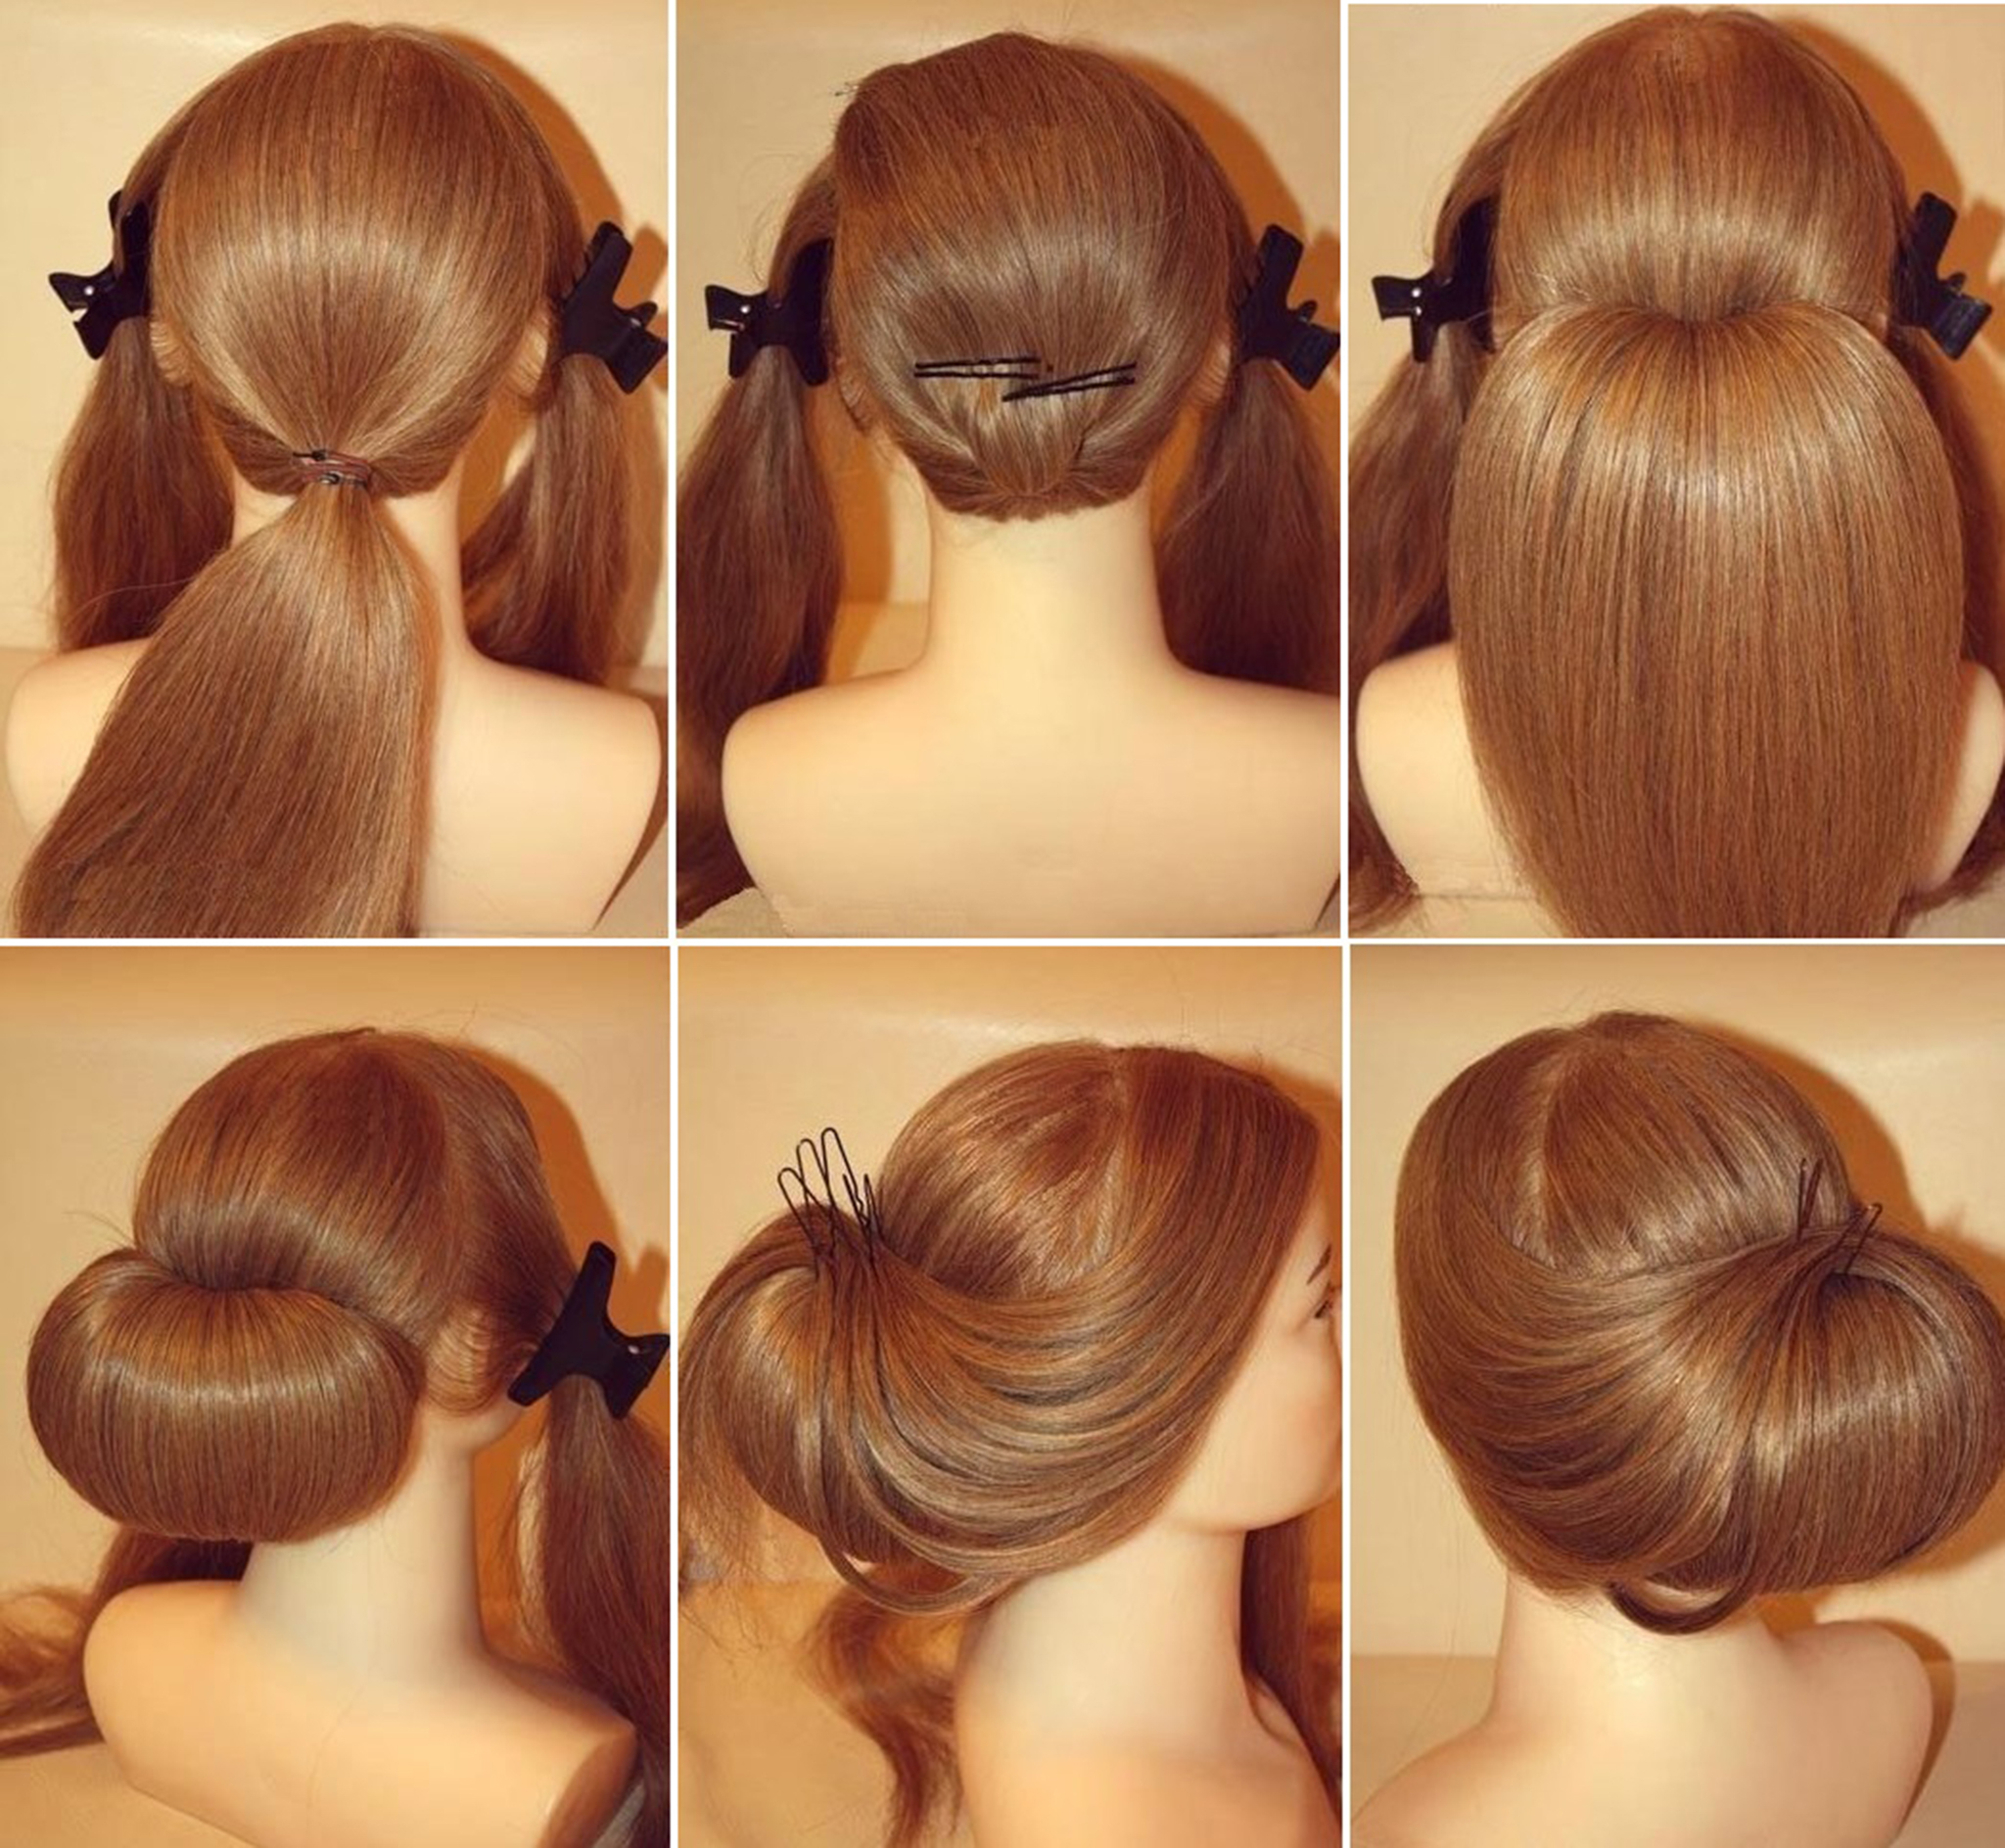 12 Most Beautiful Hairstyles You Will Love Easy Step by step Tutorials